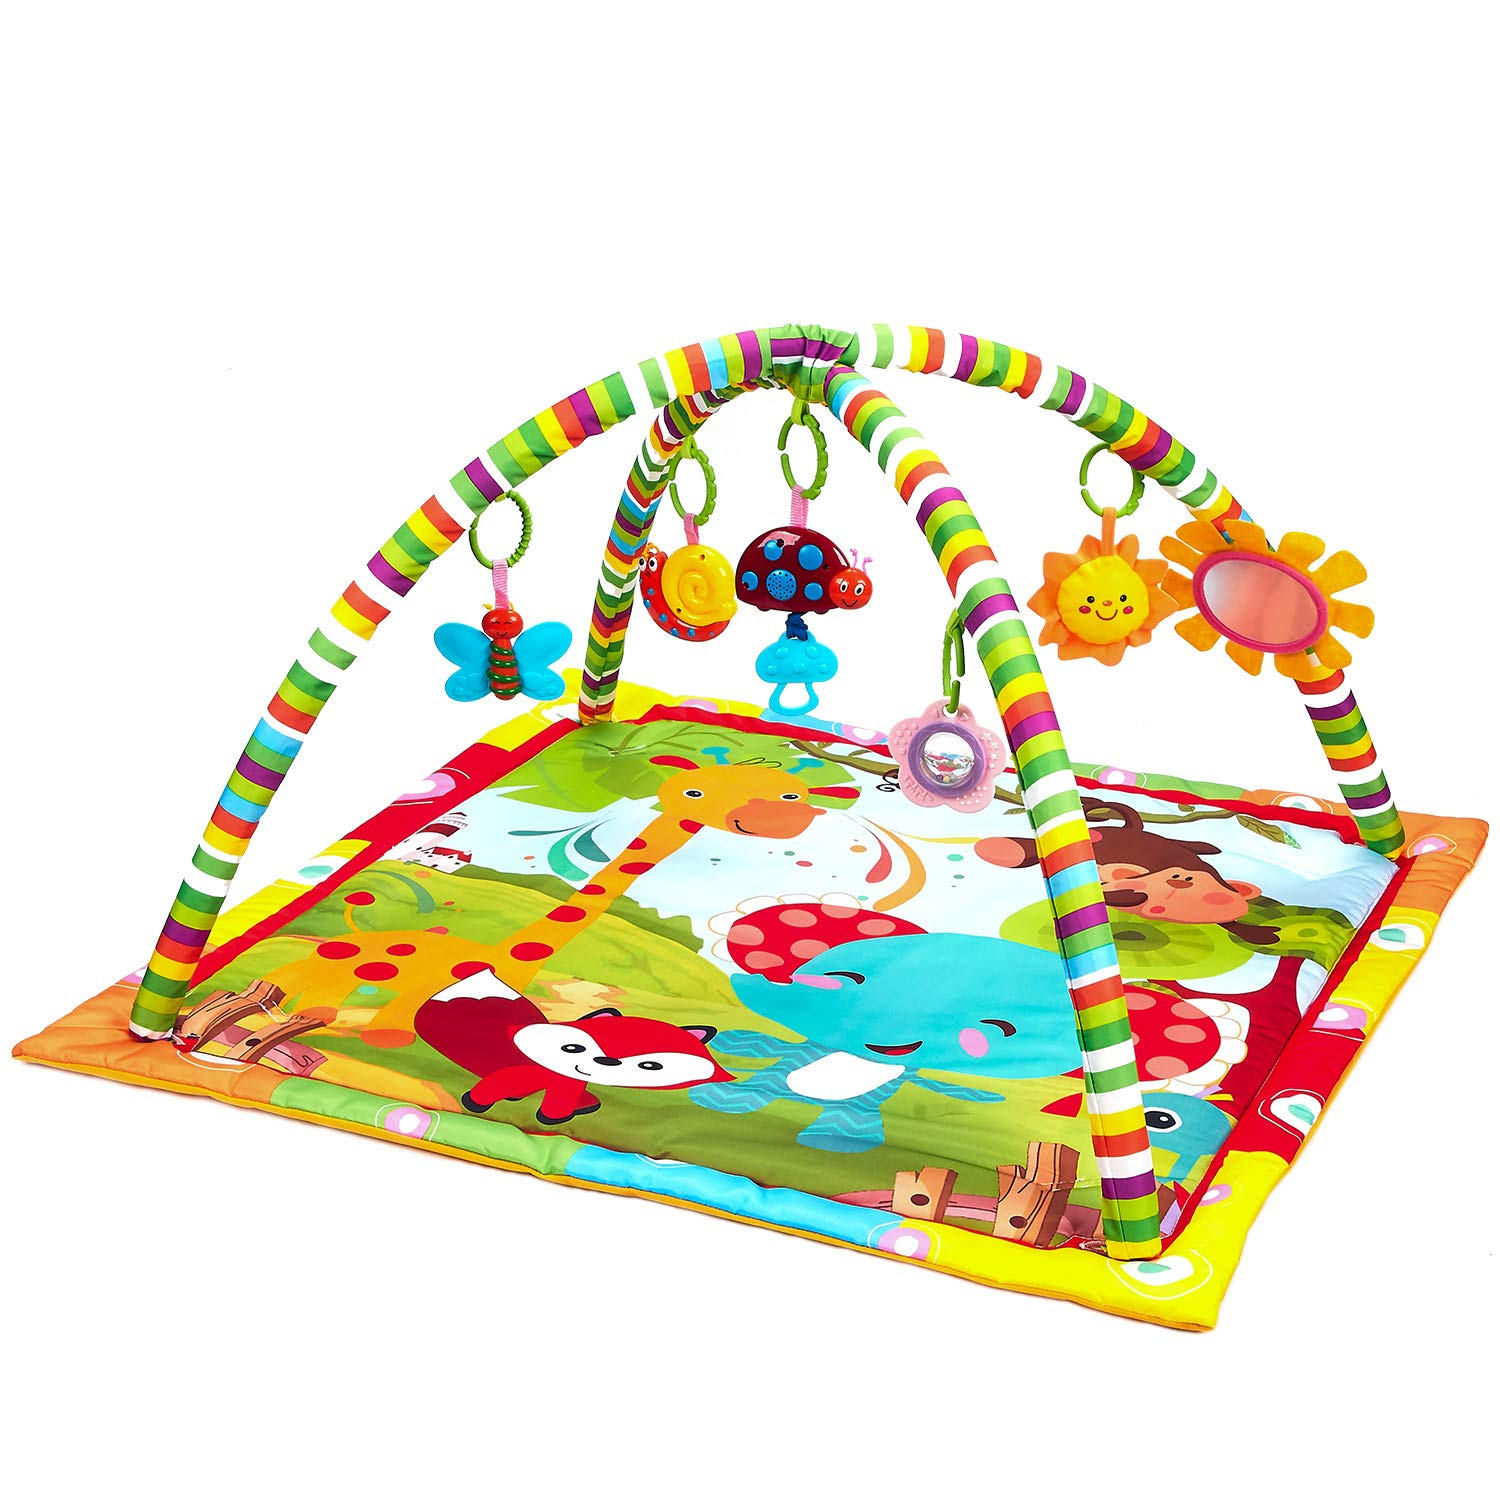 Play Gym New Born Baby Playmat Musical Activity Gym,Soft Toy Fun Animals,Music,Textures,Rattle,Teethers Discovery Carpet for Infants Toddlers Newborn Kick and Playmat 0-36 Months Mirror